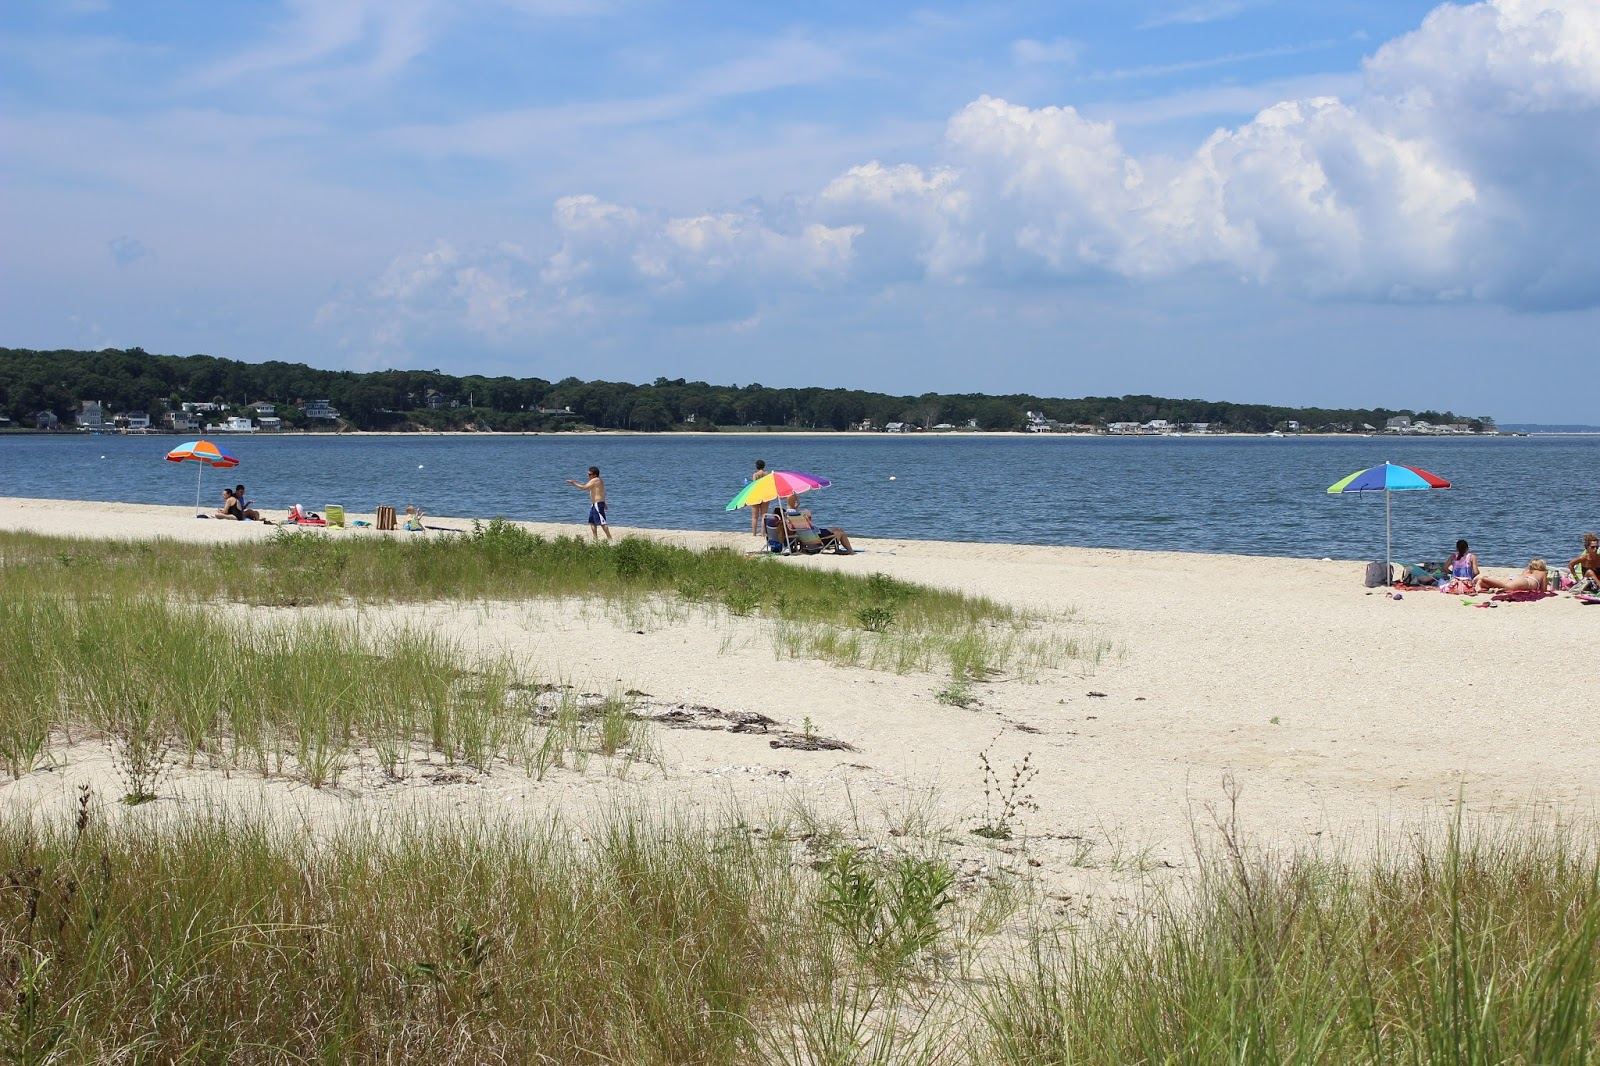 Acre Beach Property To Southampton Town Which Sag Harbor Village Is A Part Of Back In The 1950s Renown For Its Beauty And Easy Access